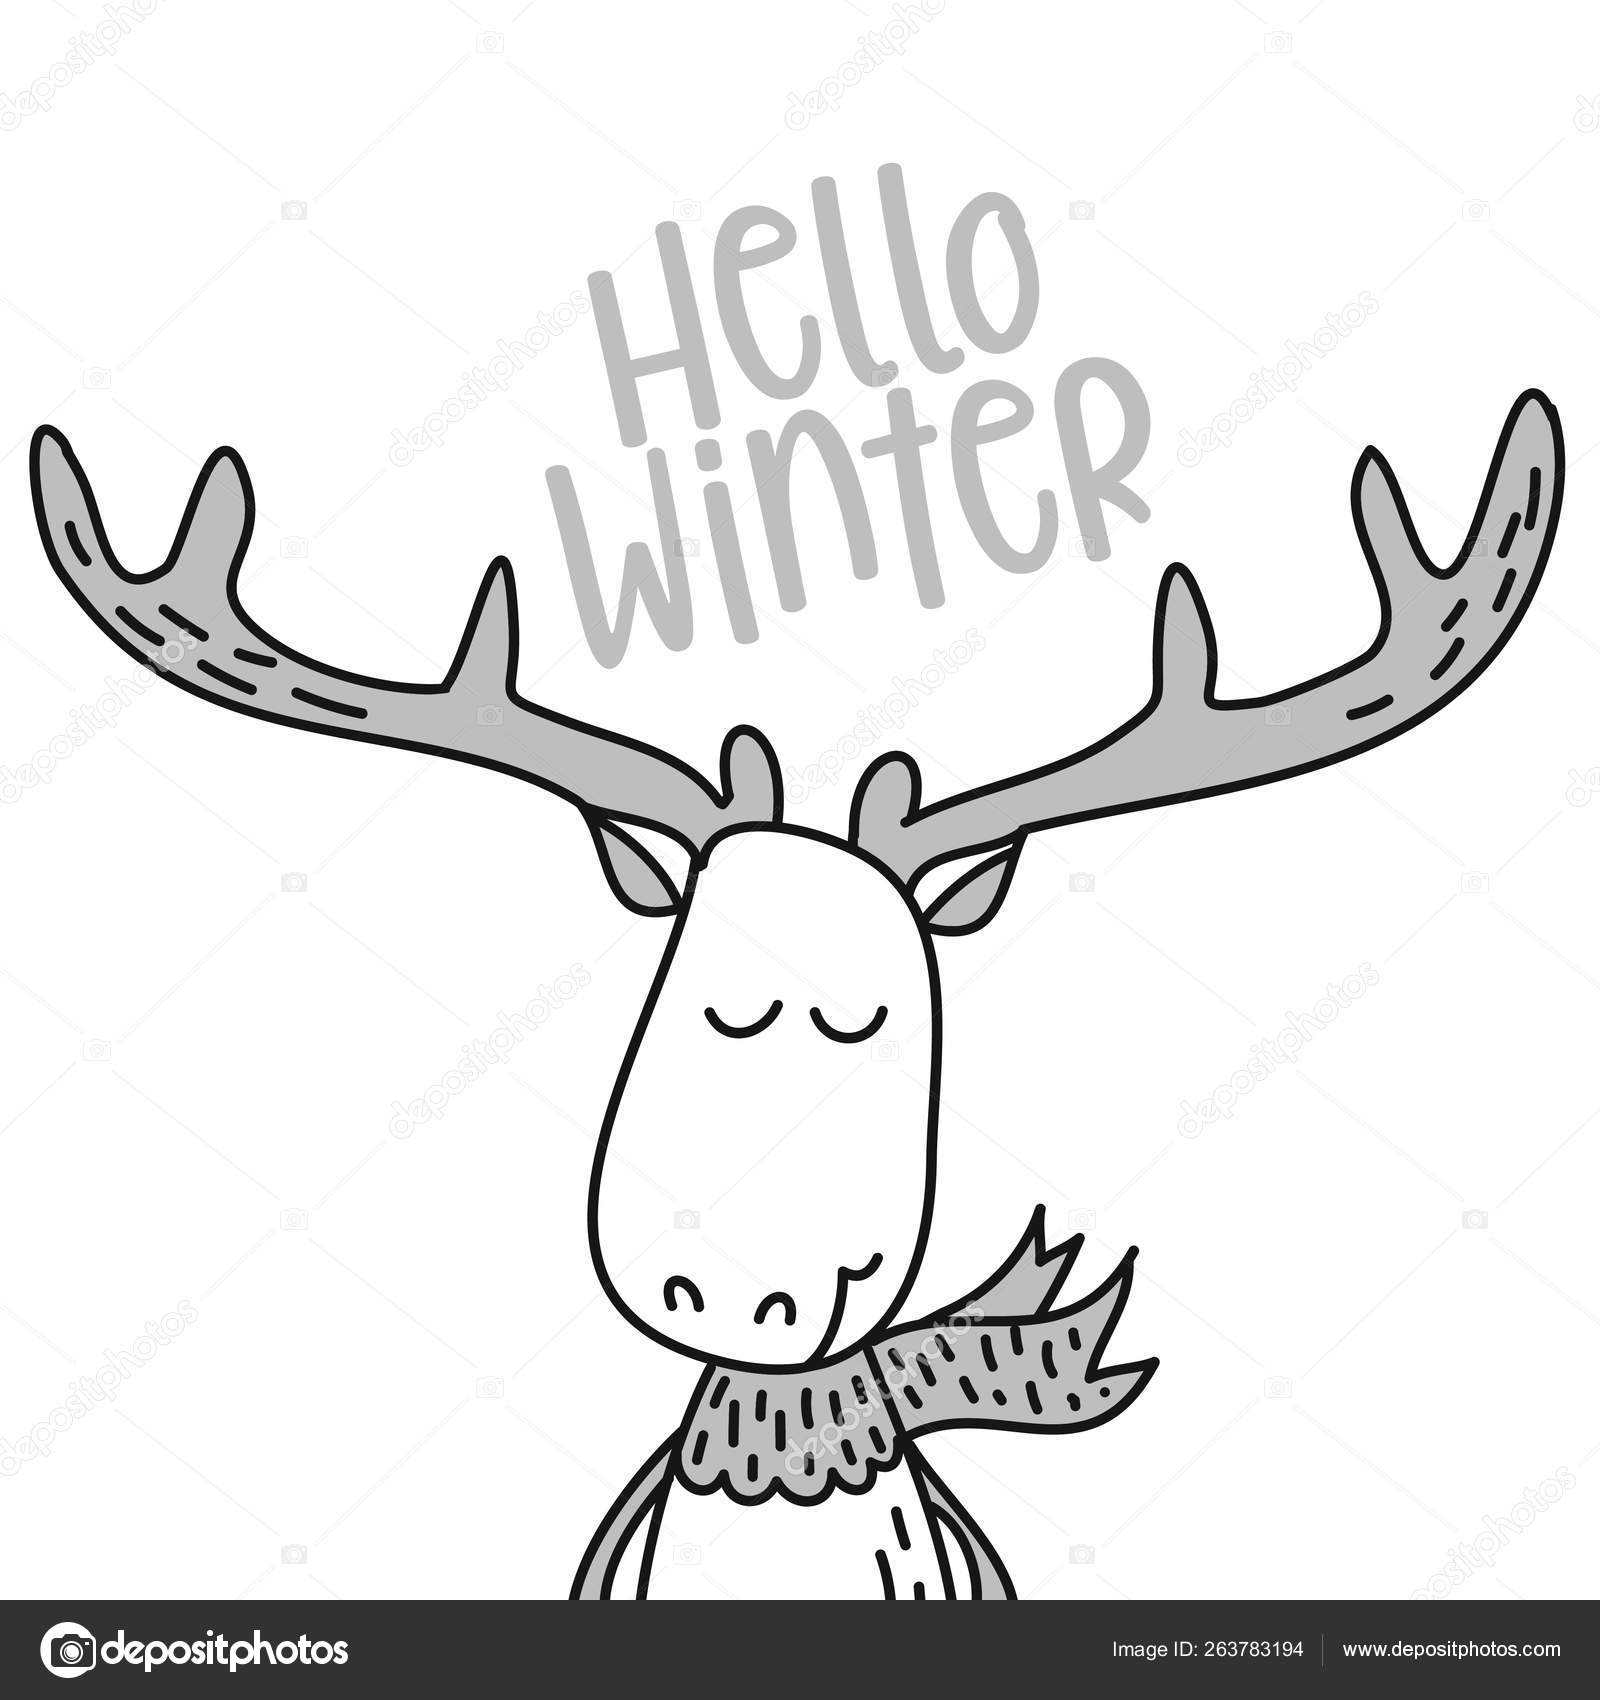 Hello Winter Cute Deer Design Funny Hand Drawn Doodle Cartoon